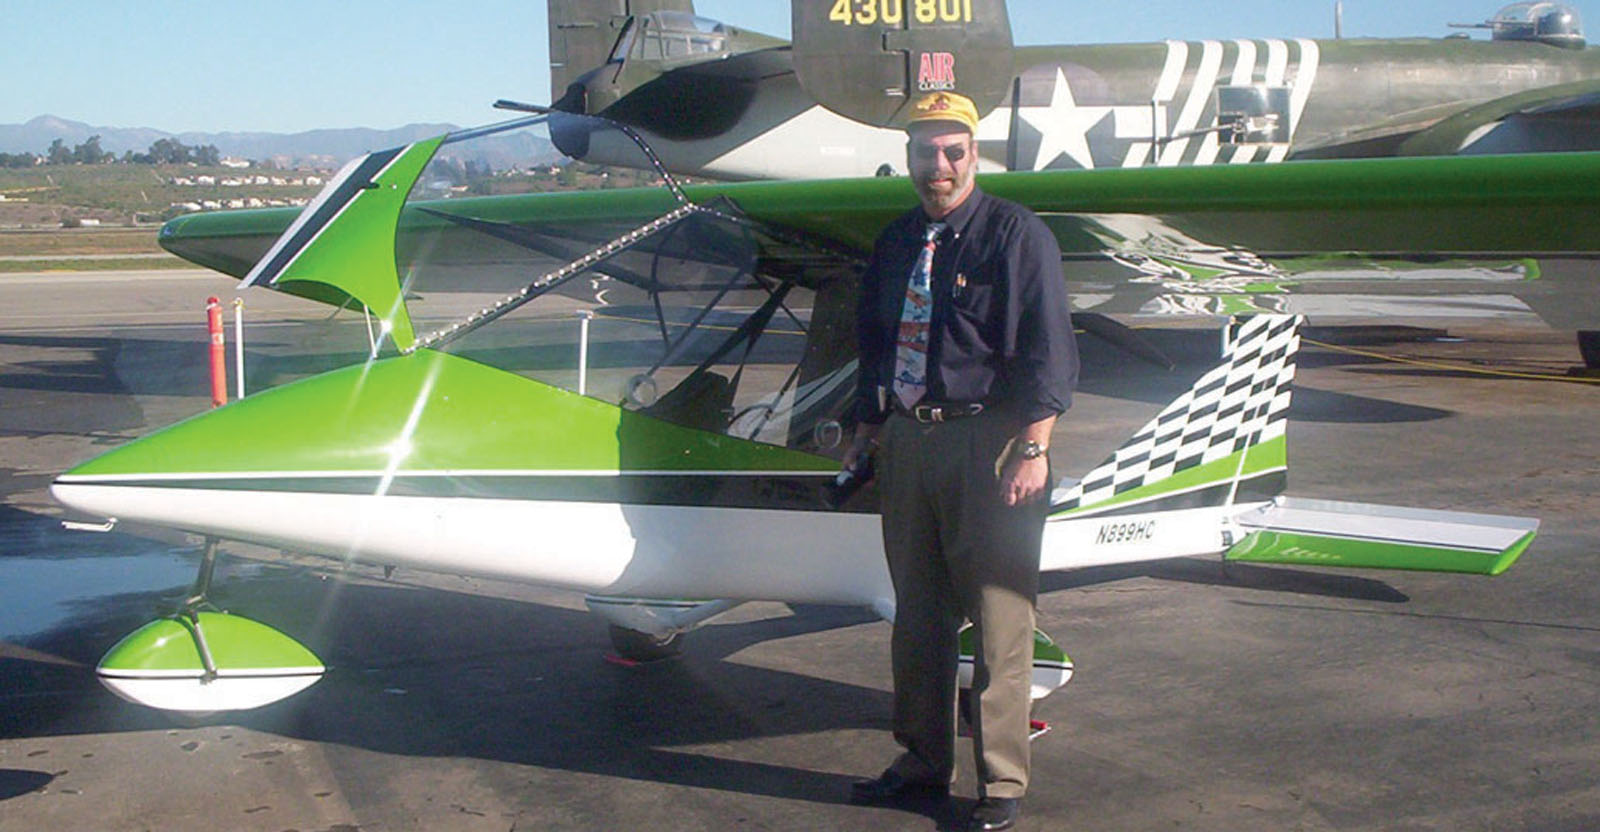 EAA Sport Pilot Tour Comes to Camarillo Airport   Airport Journals